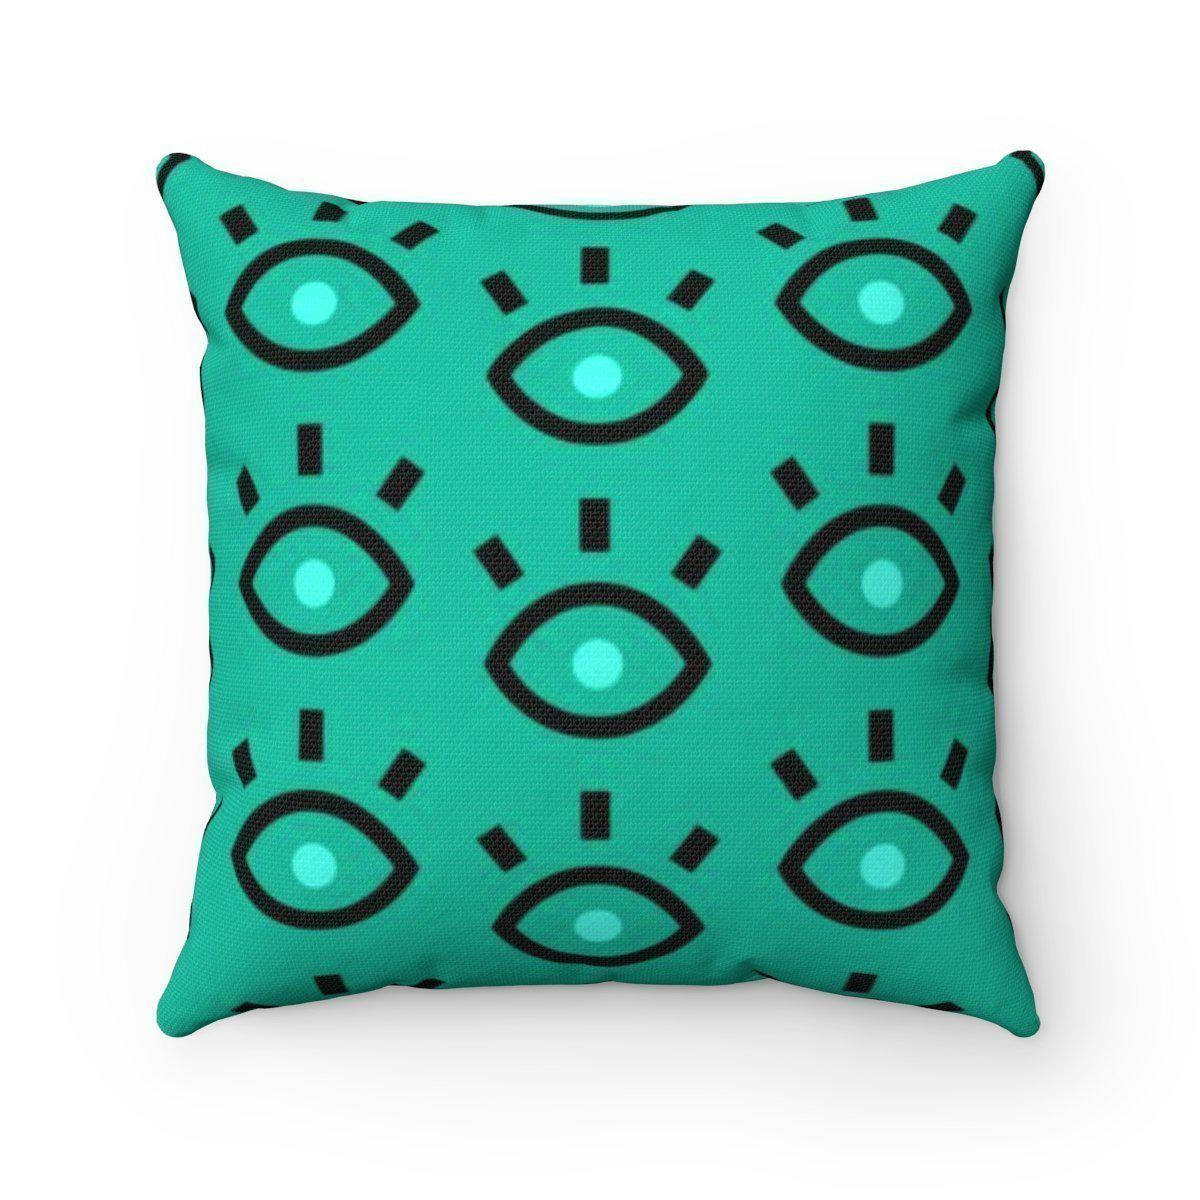 Maison d'Elite modern decorative cushion cover-Home Decor - Decorative Accents - Pillows & Throws - Decorative Pillows-Maison d'Elite-16x16-Très Elite